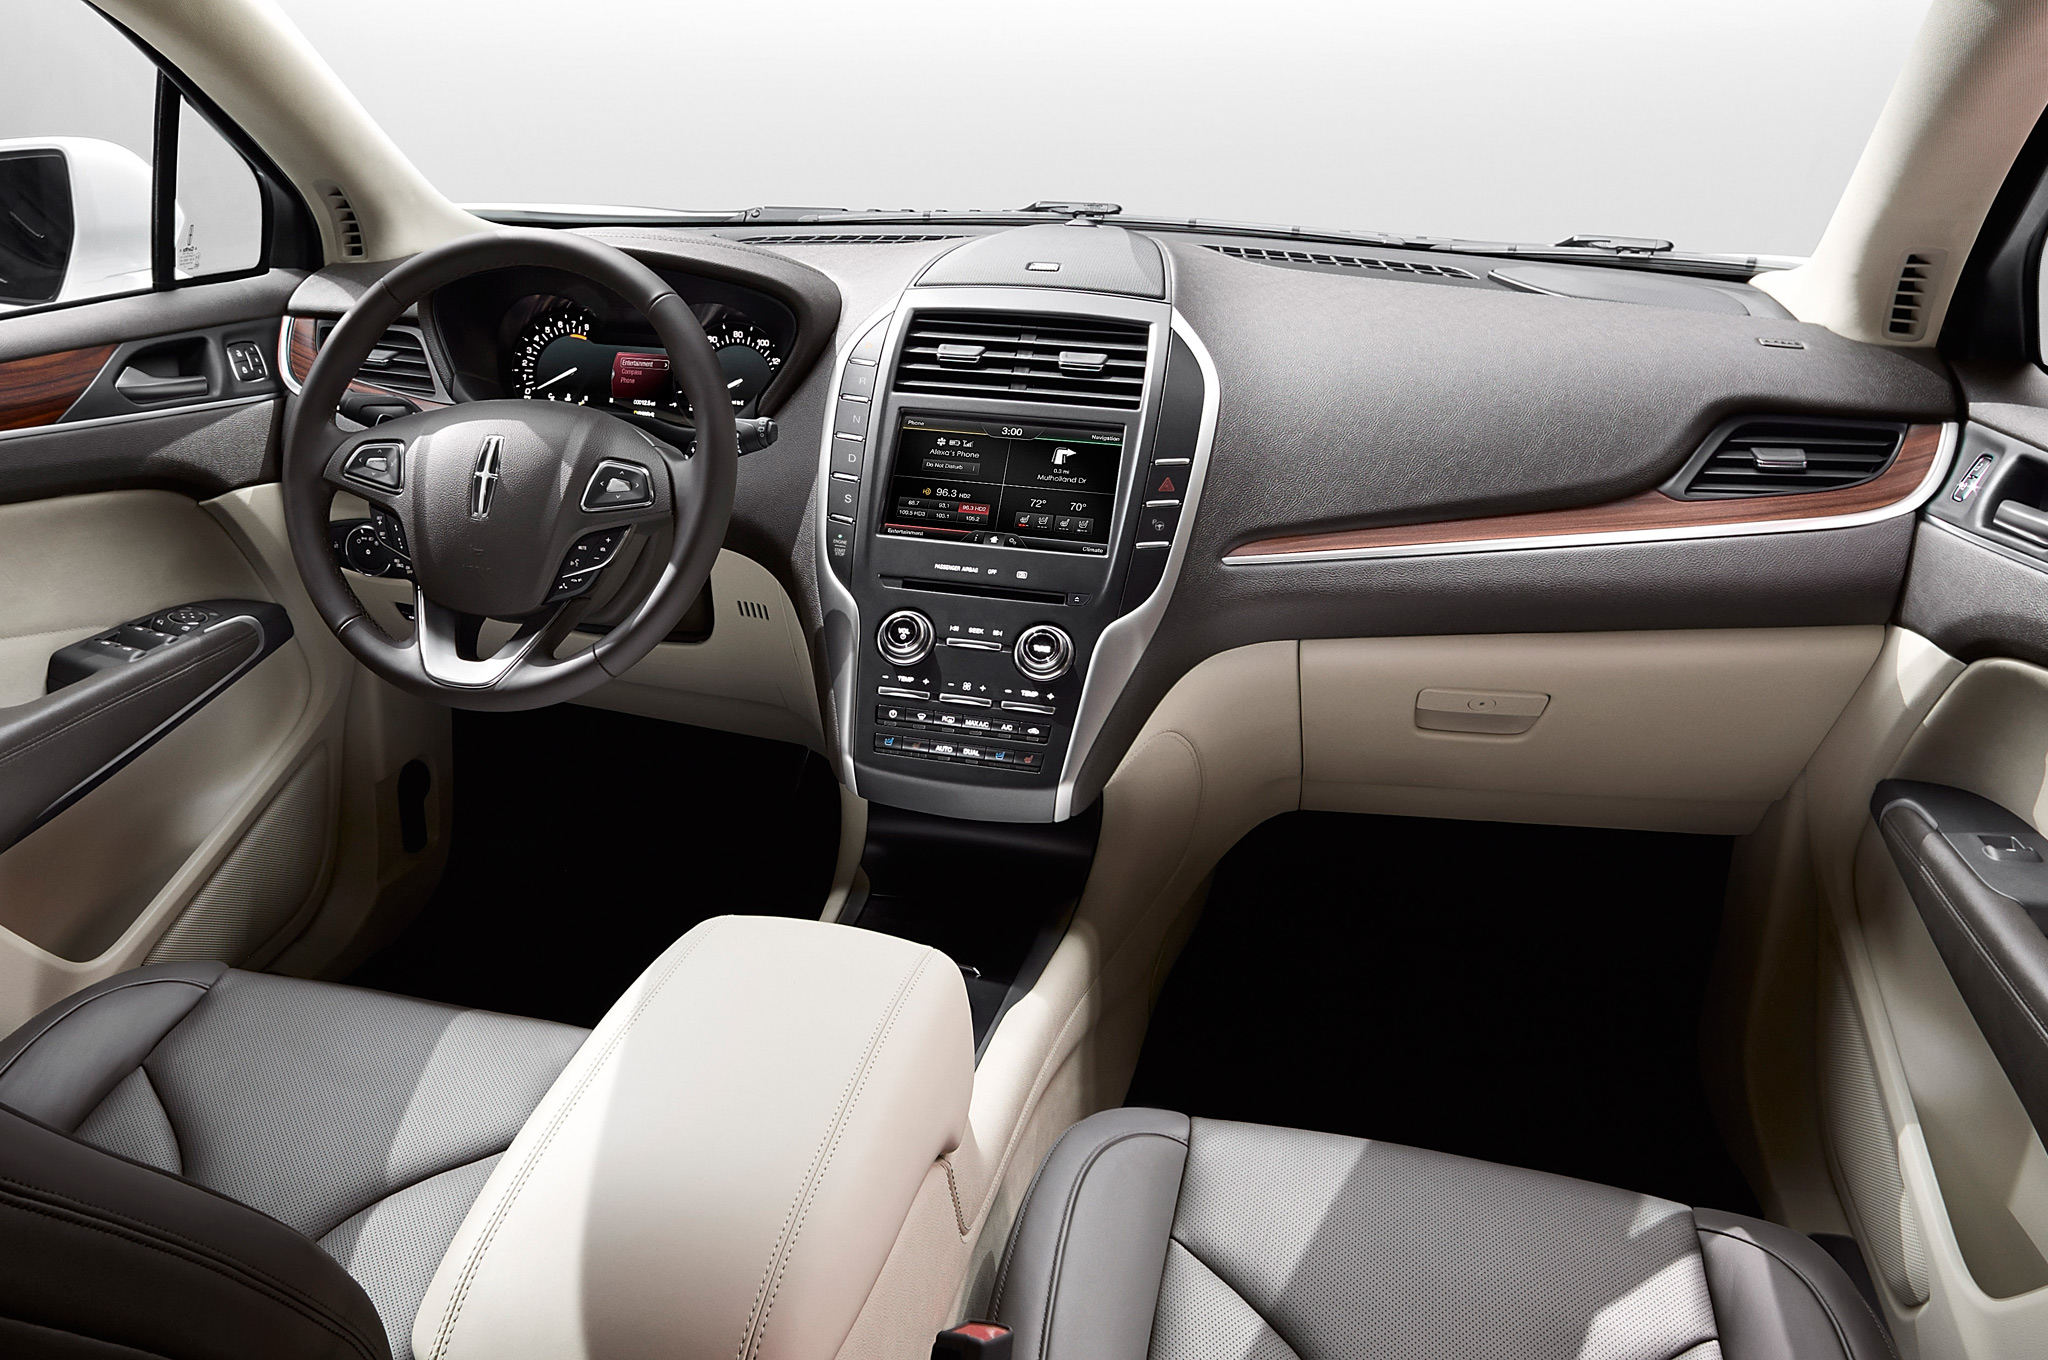 2015 Lincoln MKC Cockpit and Dashboard